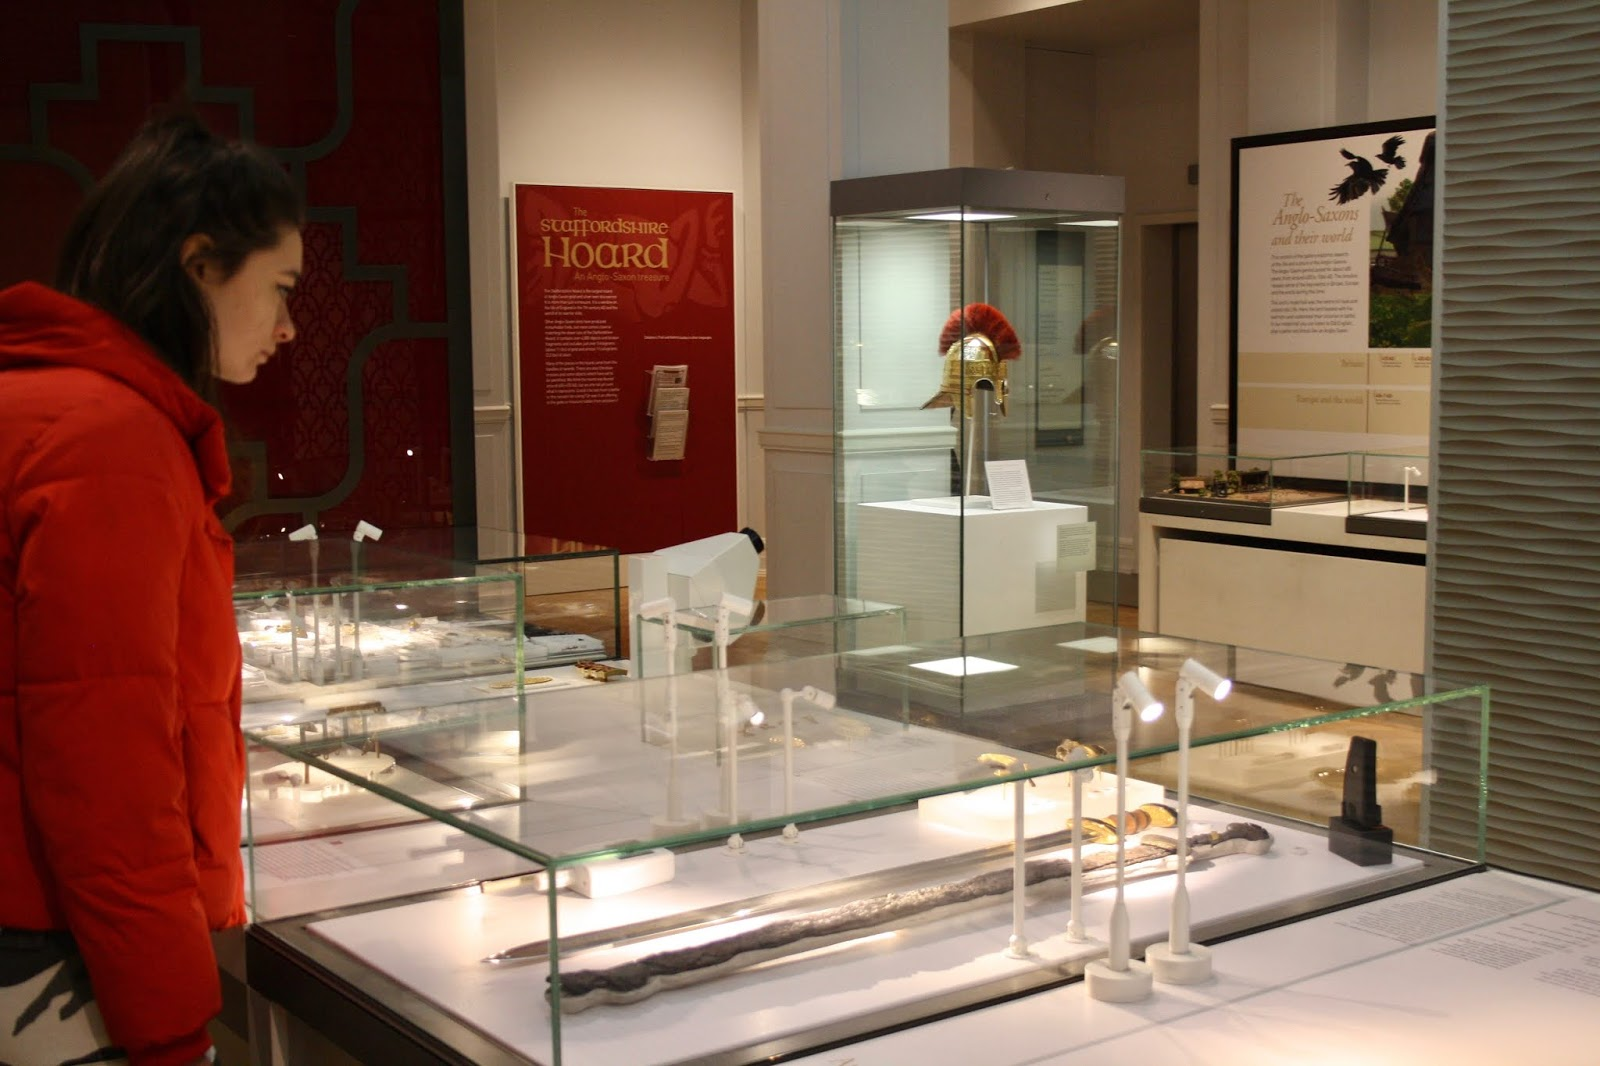 Staffordshire Hoard displays at the Birmingham Museum and Art Gallery